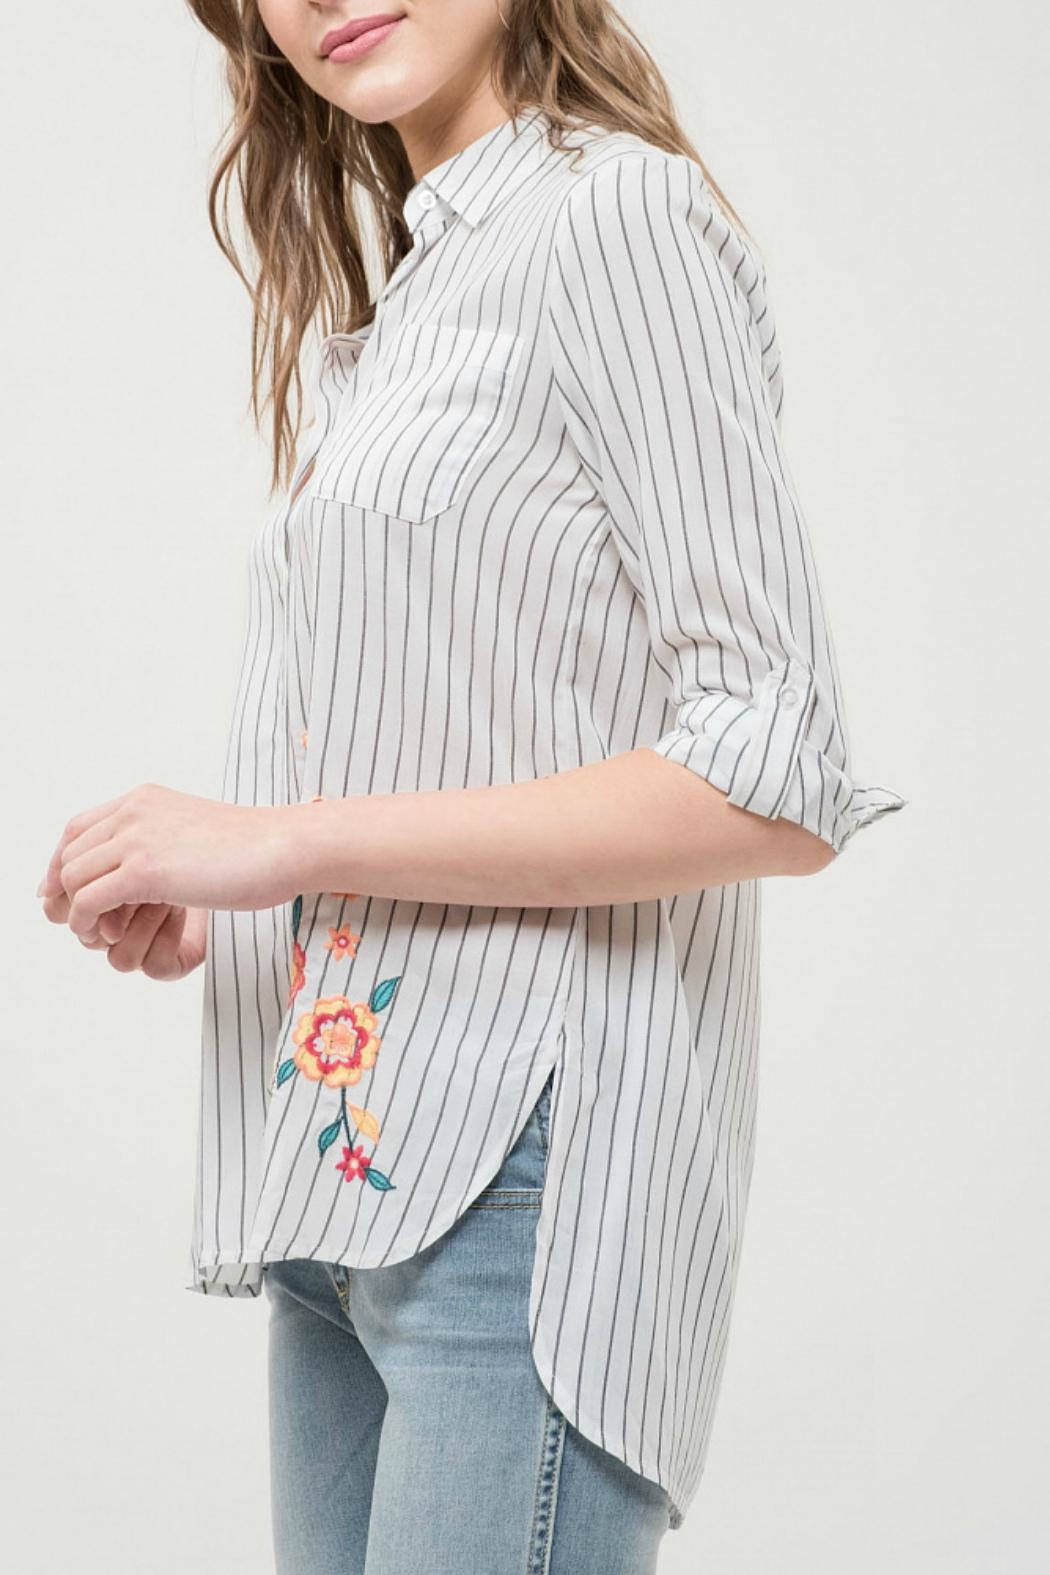 Blu Pepper Collared Embroidered Top - Front Full Image